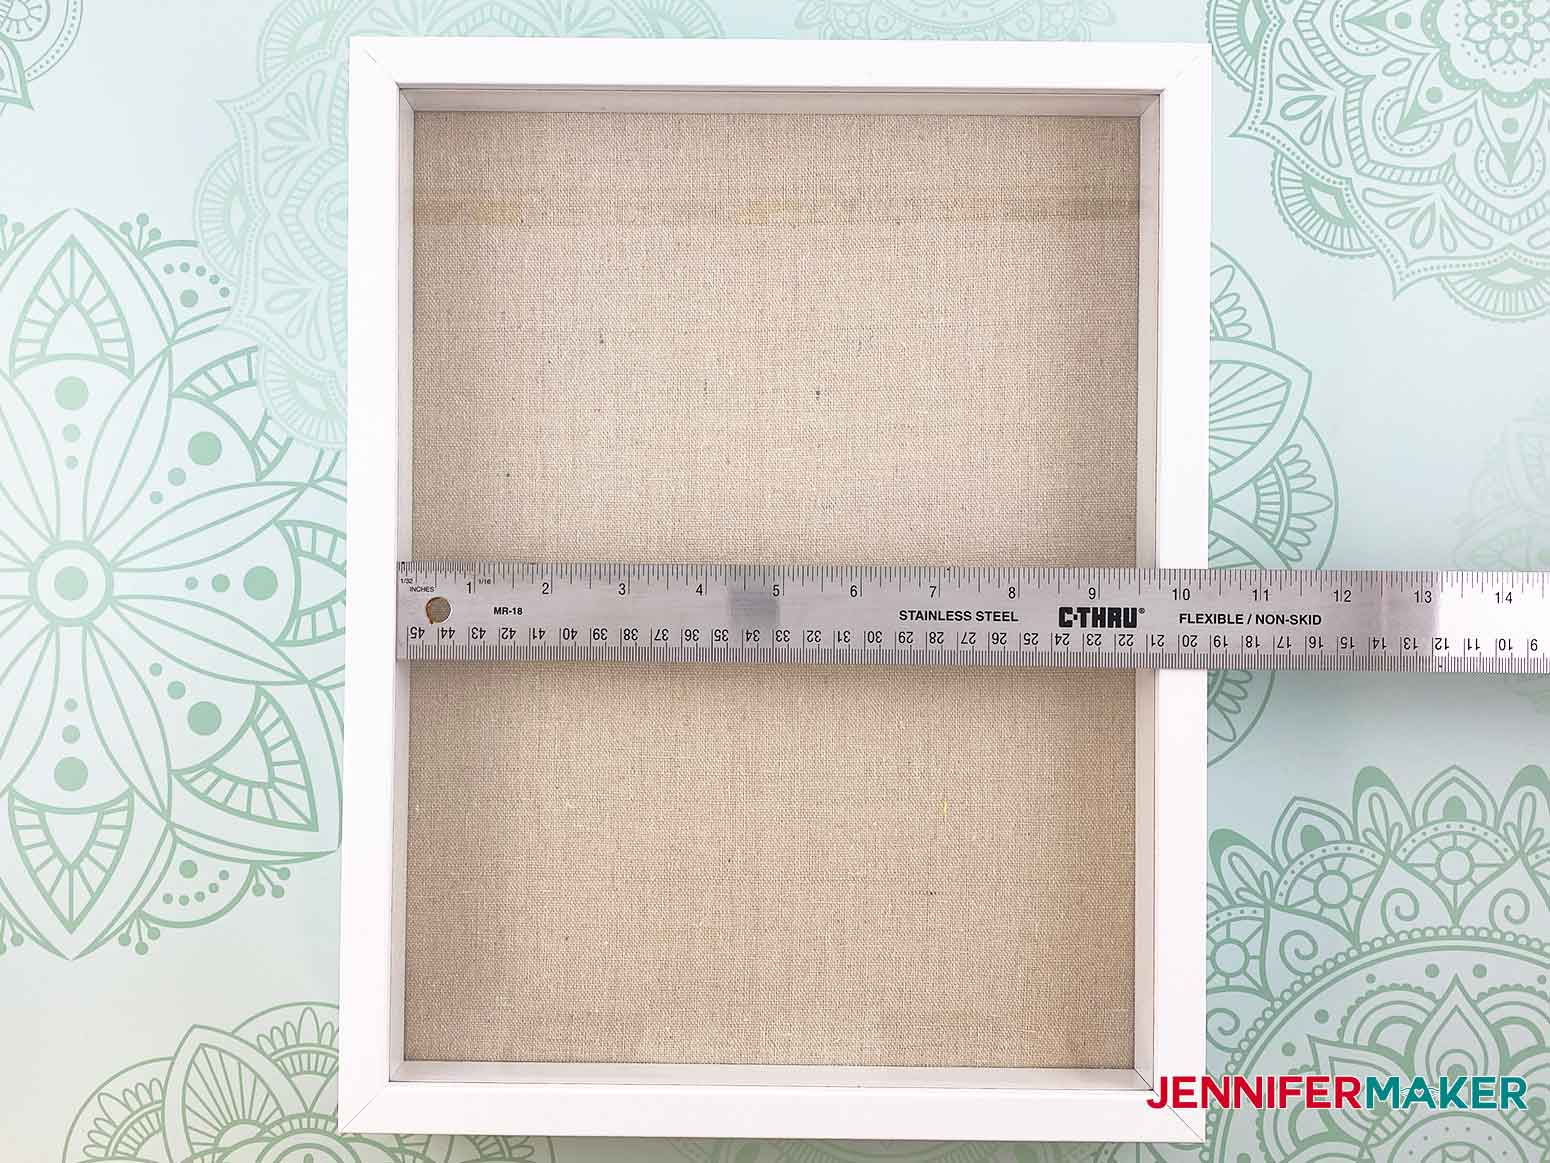 Measure the width and height of the frame for my personalized unicorn frame